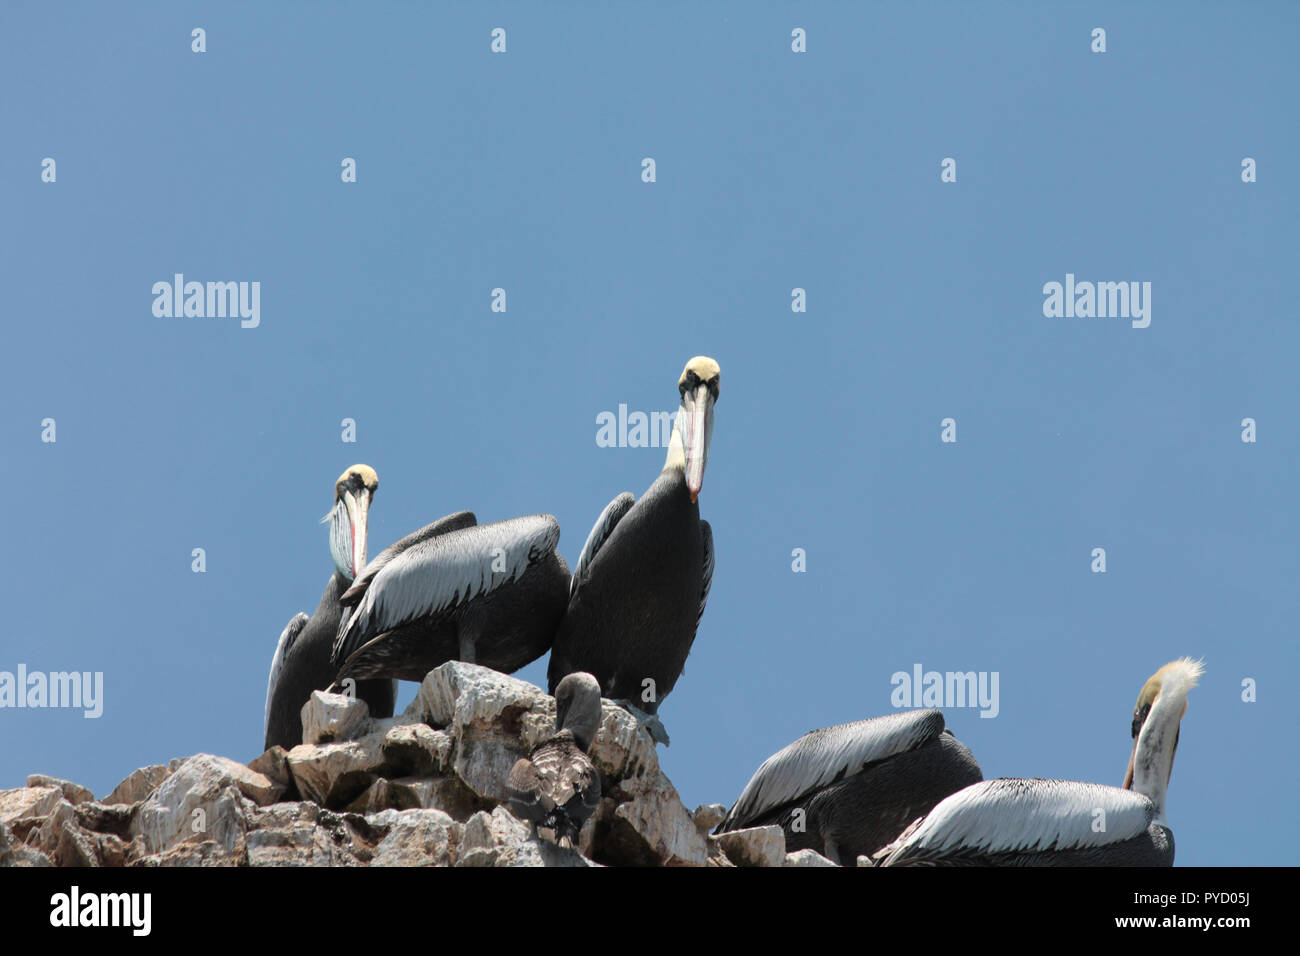 Pelicans looking skeptical - Stock Image